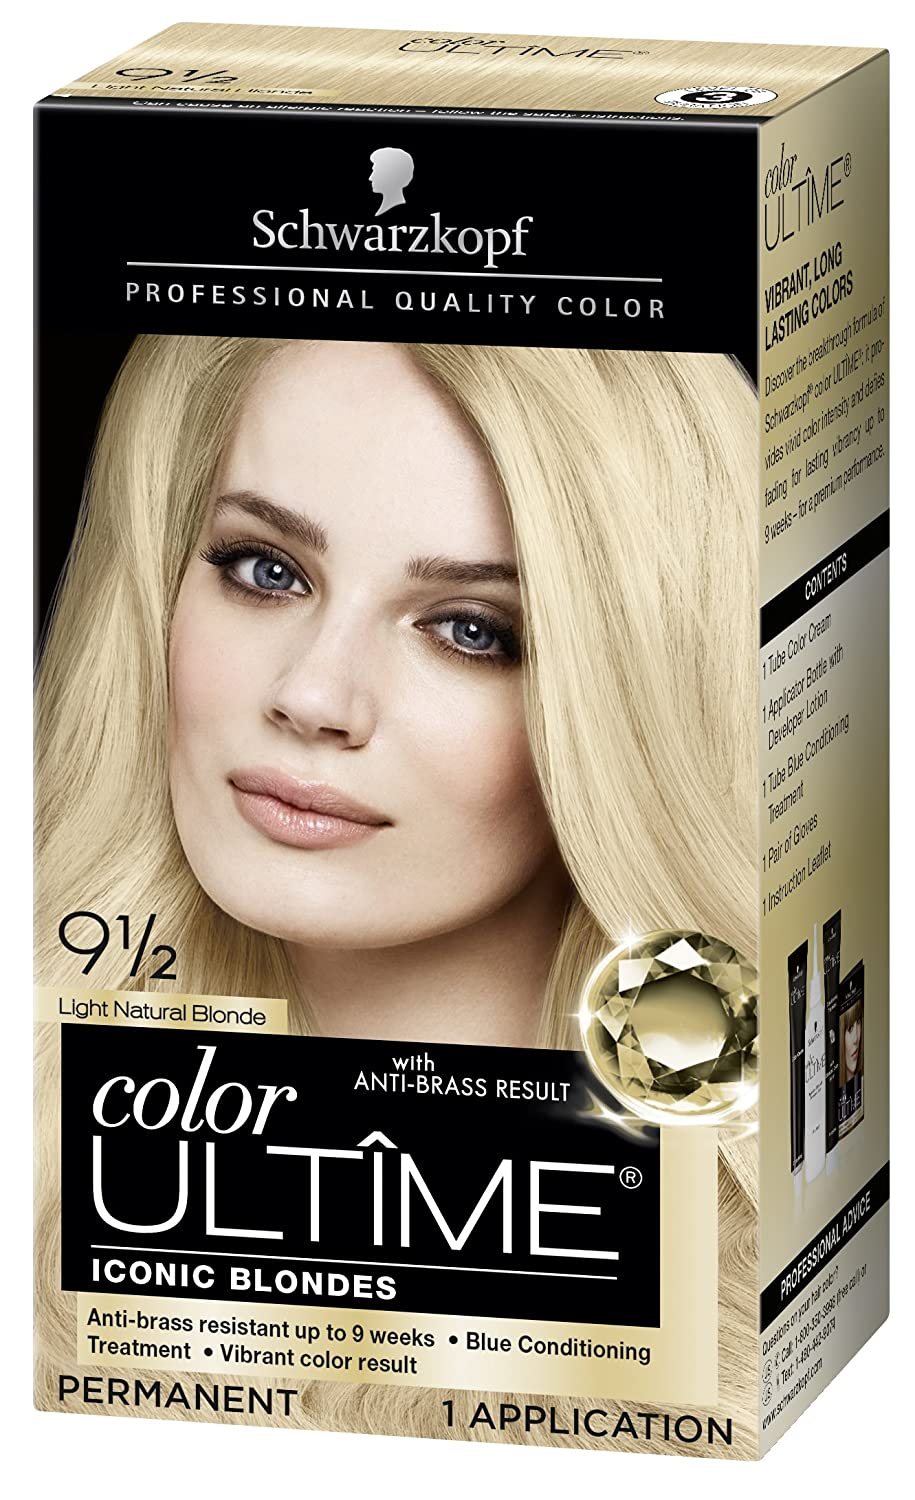 Schwarzkopf Ultime Hair Color Cream, Light Natural Blonde, 9.5, 2.03 Ounces